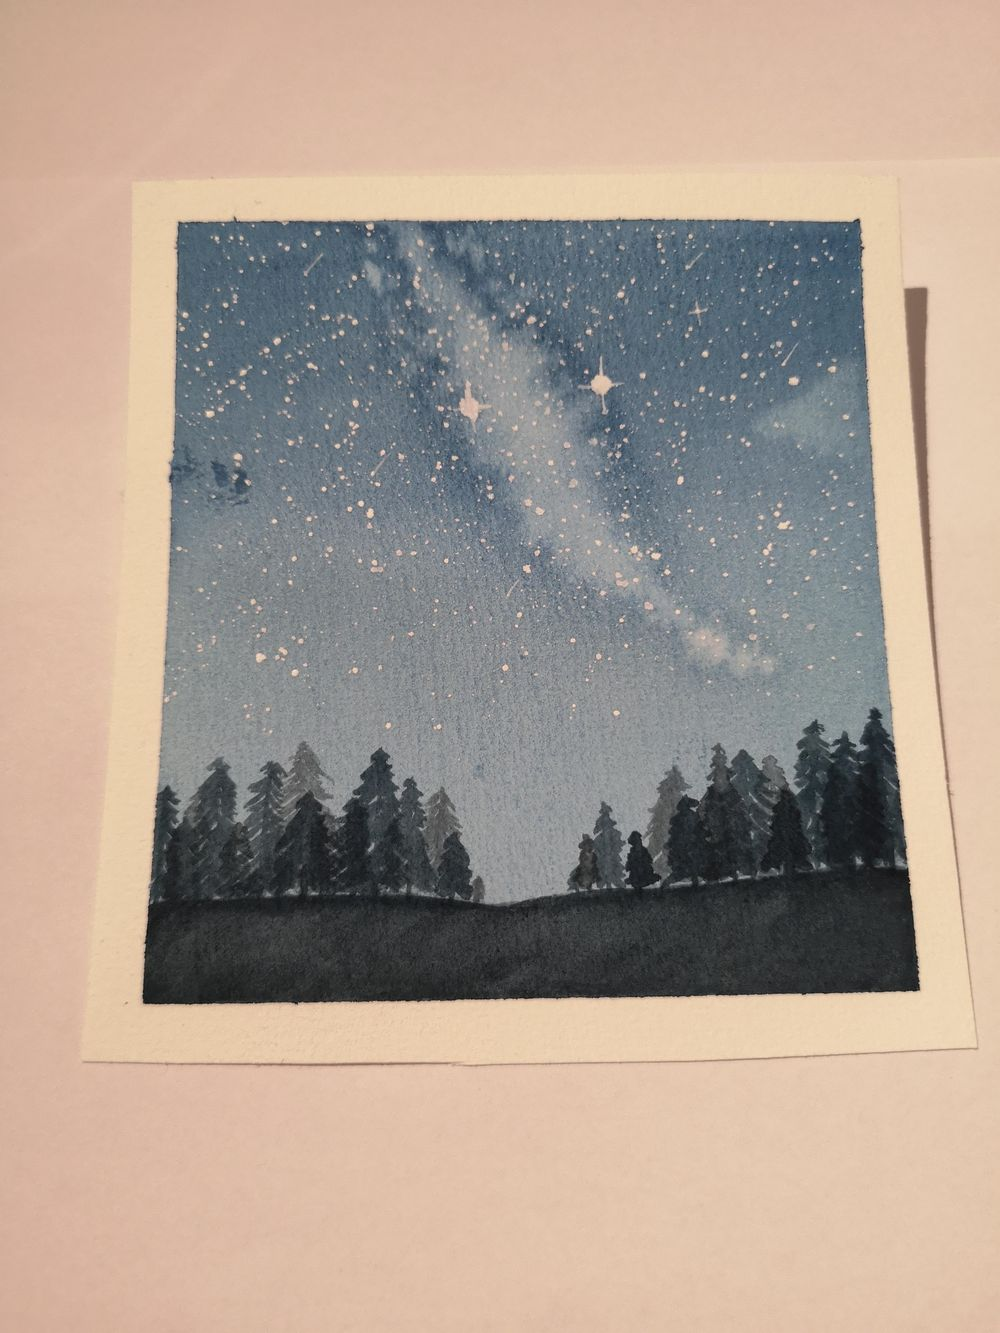 My first Milky Way - image 1 - student project